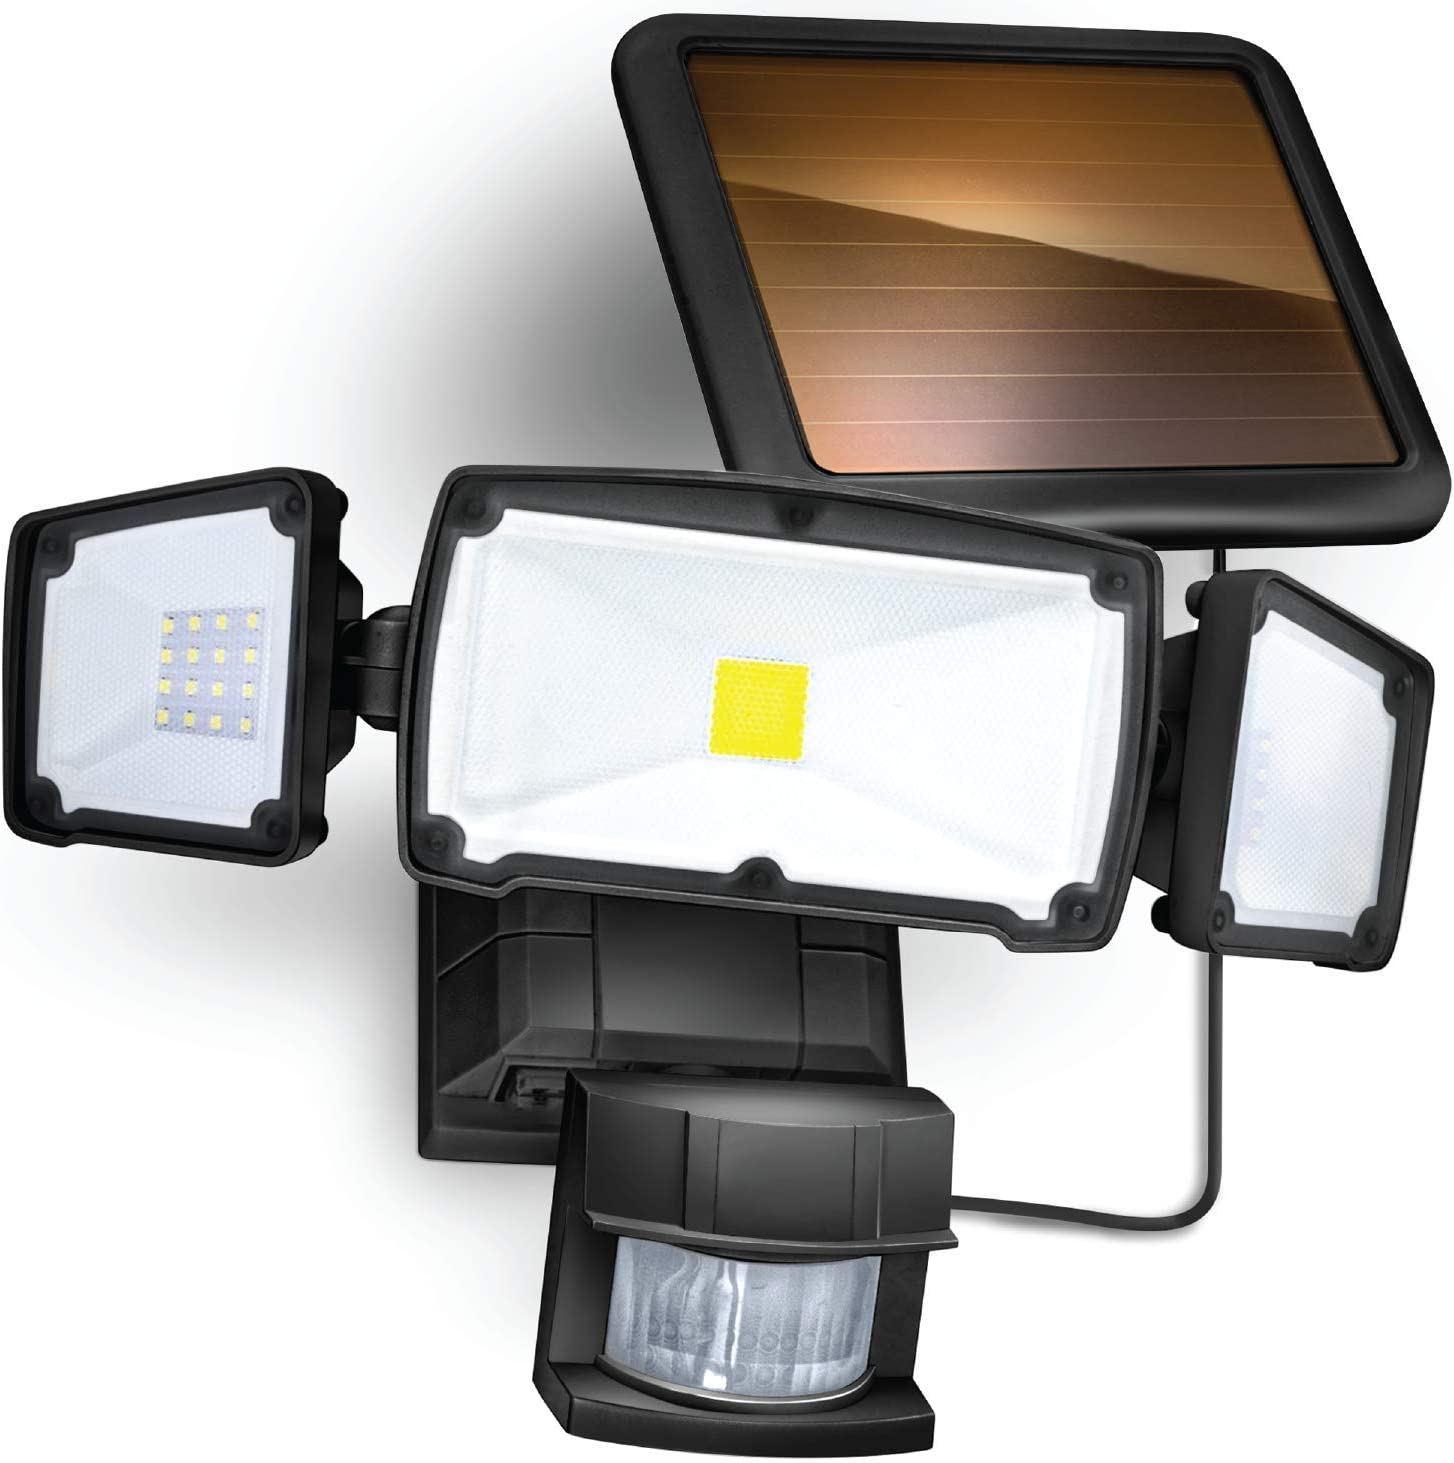 Home Zone Security Solar Motion Sensor Light - Outdoor Weatherproof Triple Head LED Security Flood Light, Black